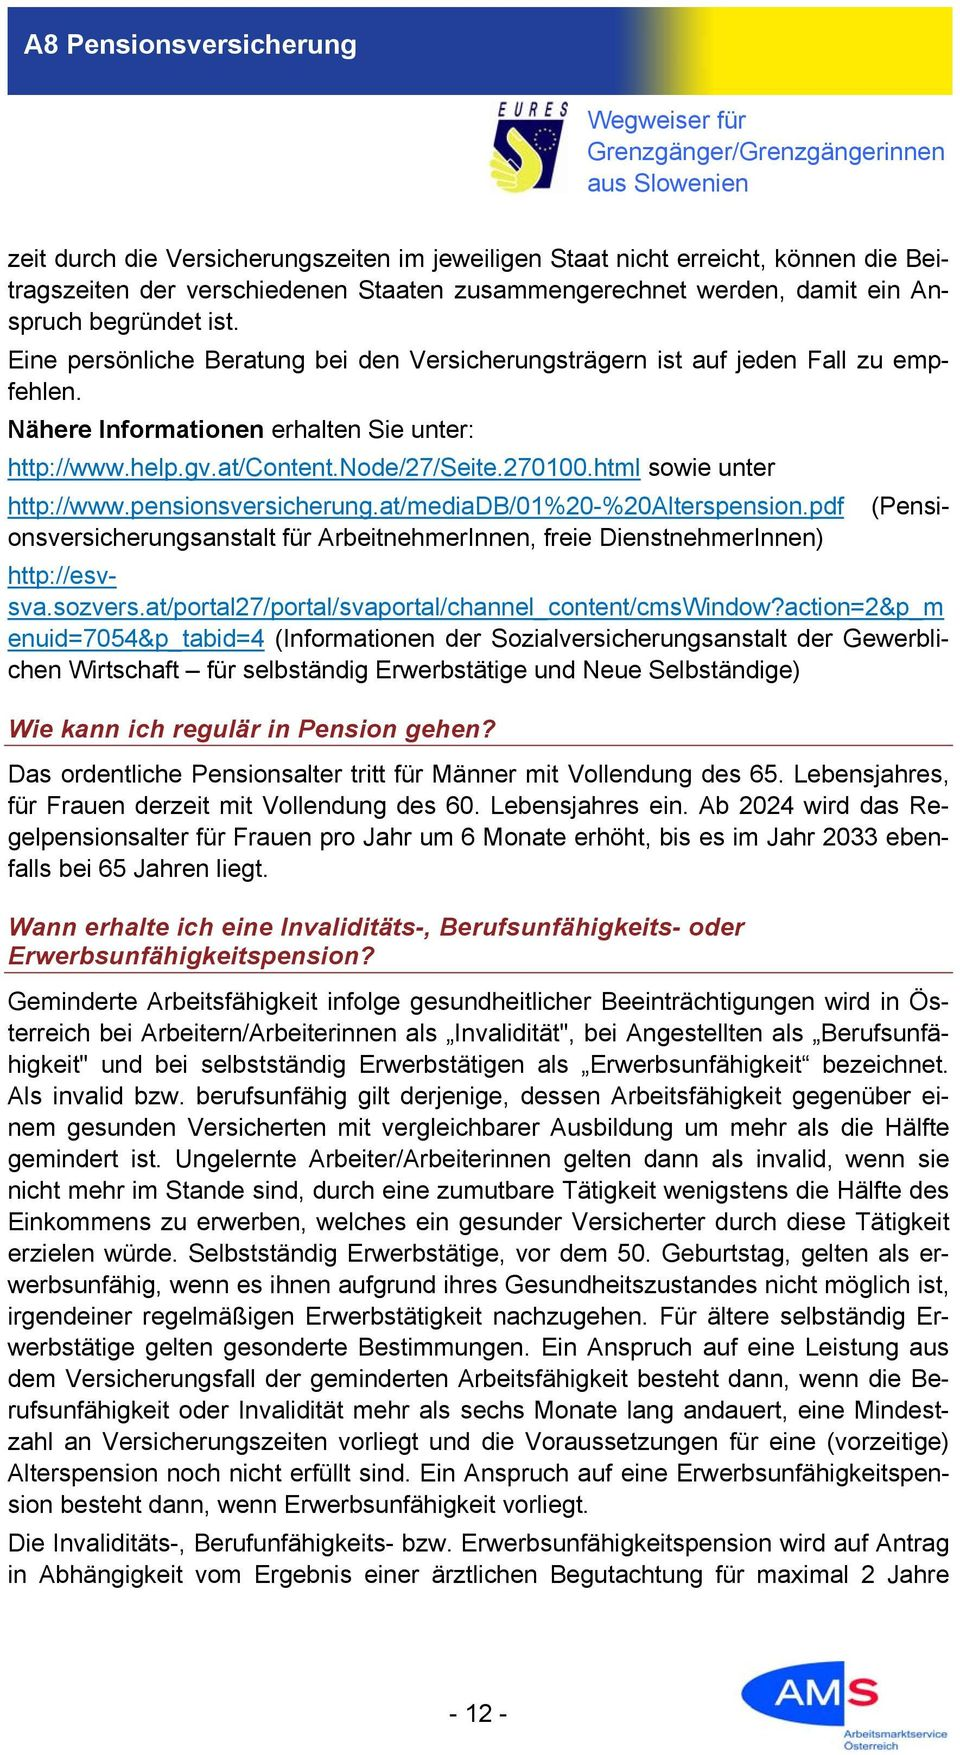 html sowie unter http://www.pensionsversicherung.at/mediadb/01%20-%20alterspension.pdf (Pensionsversicherungsanstalt für ArbeitnehmerInnen, freie DienstnehmerInnen) http://esvsva.sozvers.